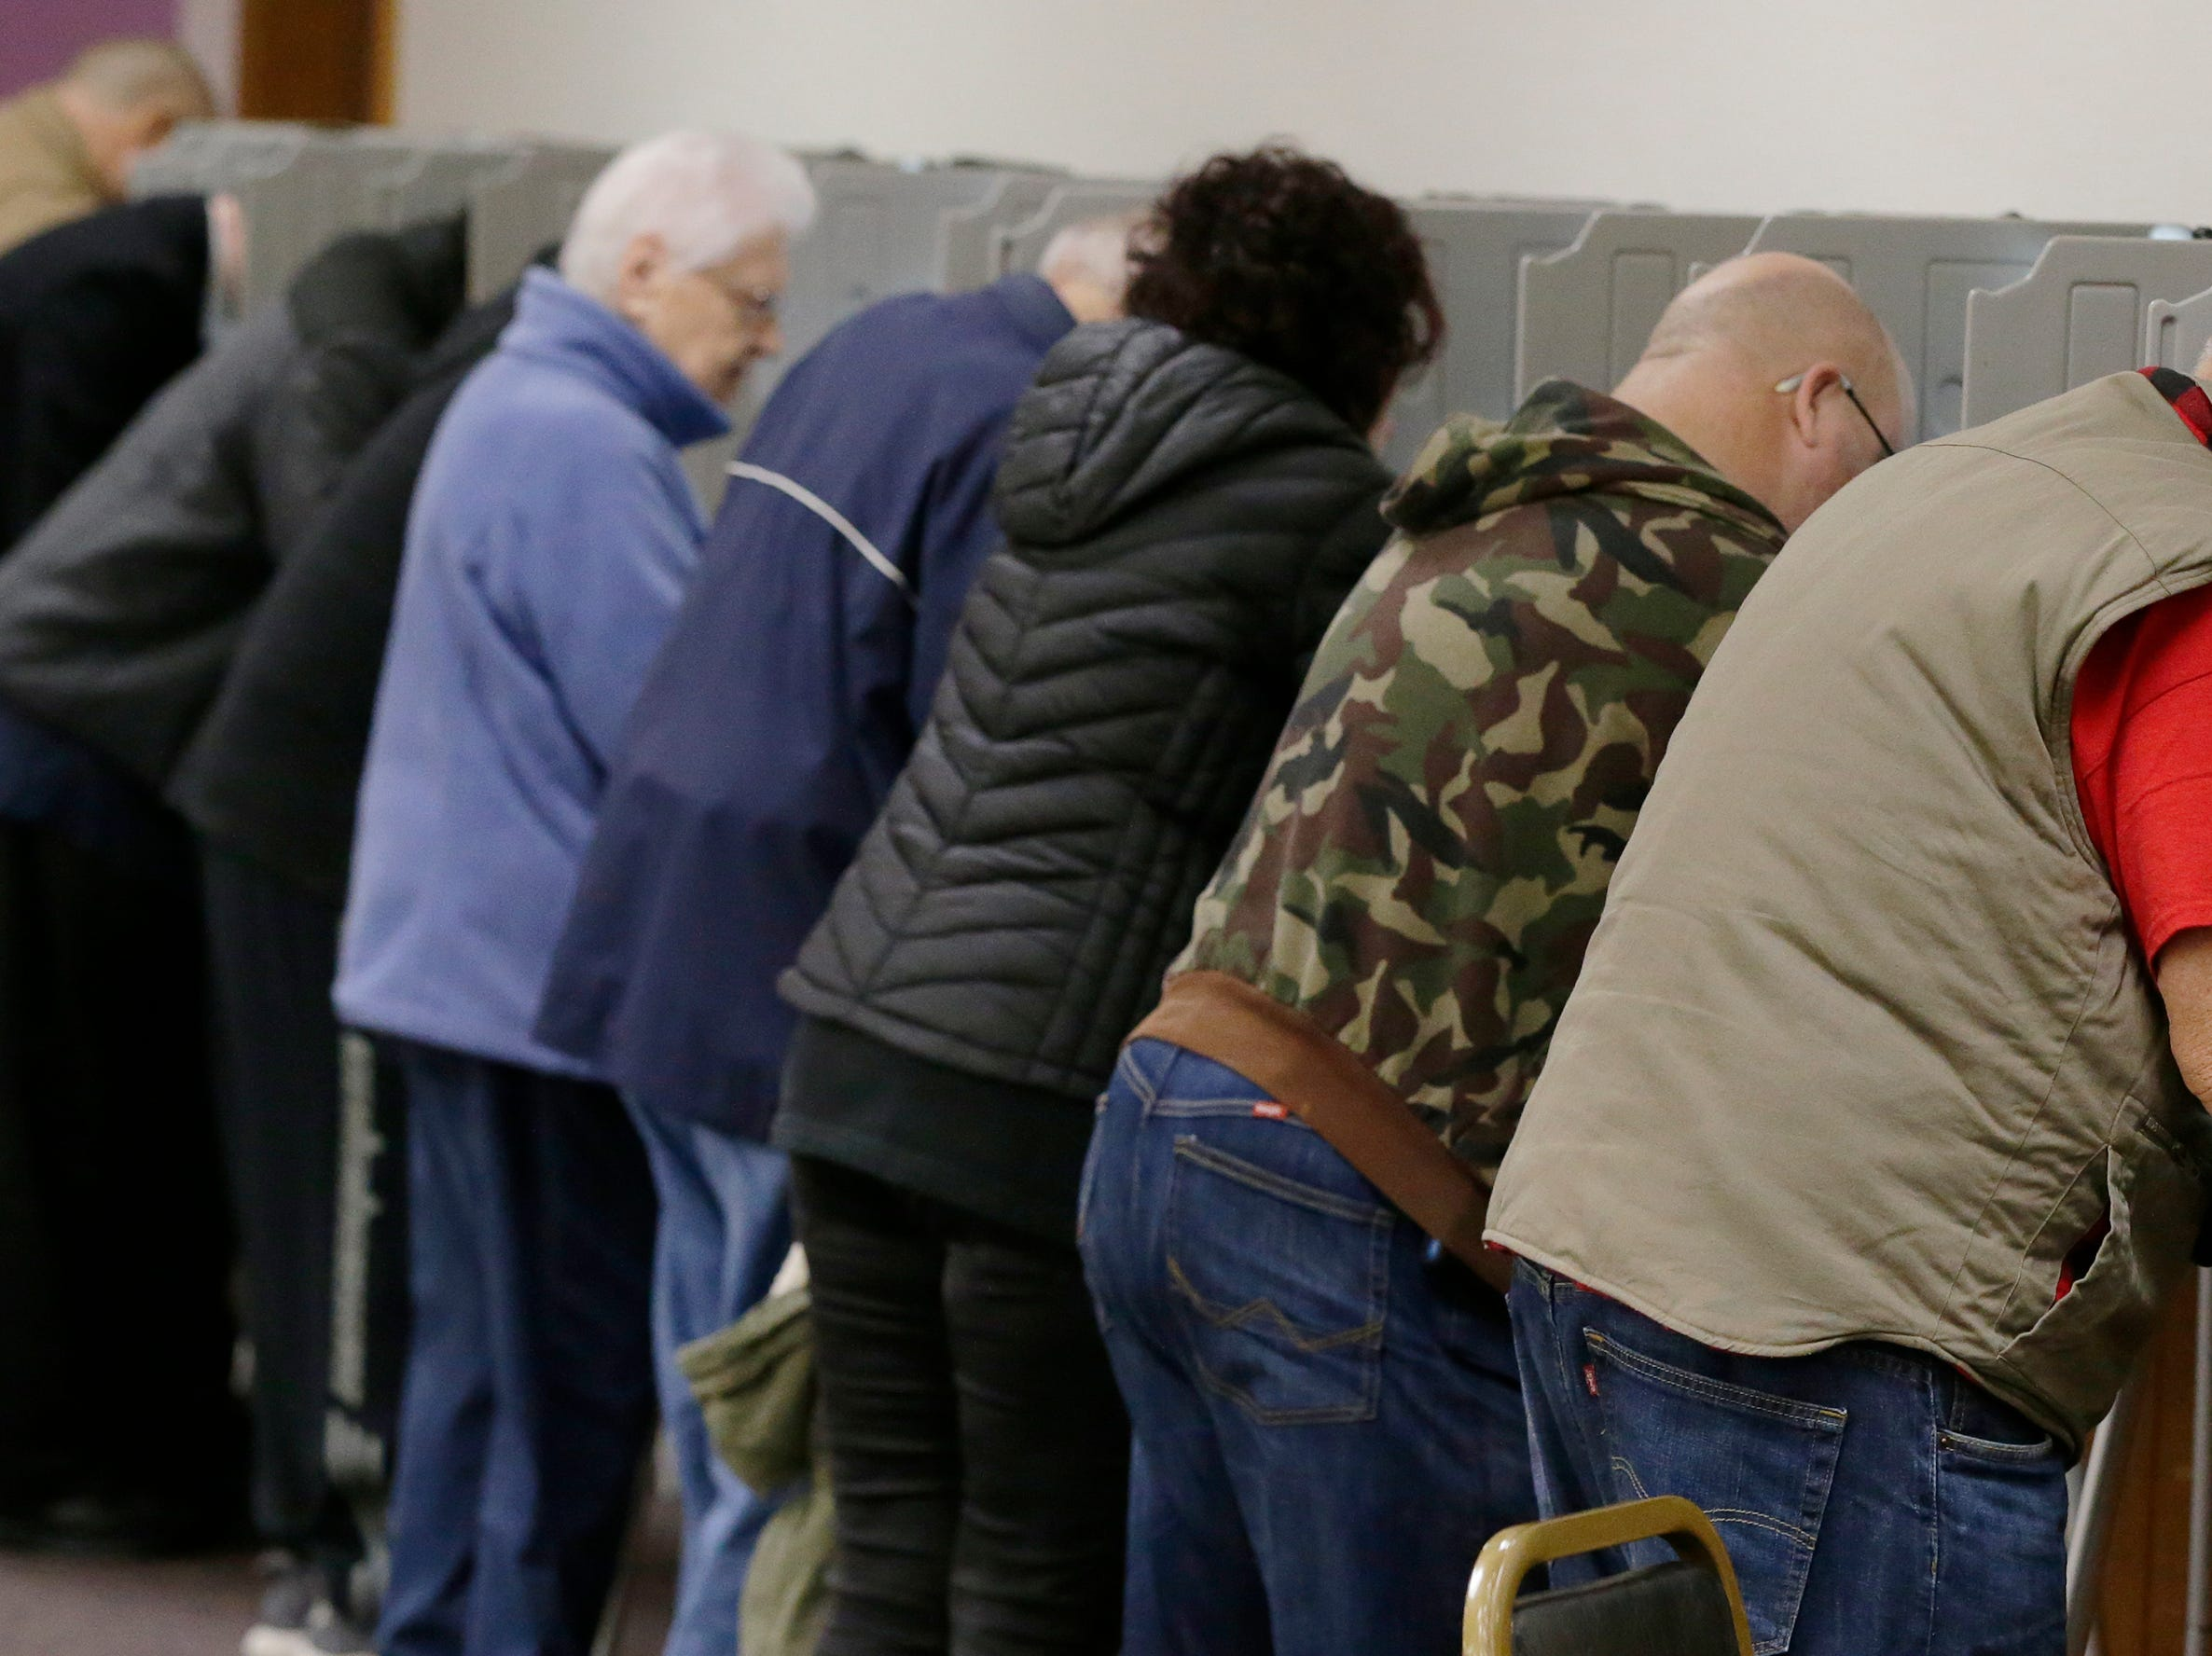 The mid-term voting keeped poll workers busy as voters waited in lines at most polling stations in Oshkosh, Wis., Tuesday, November 6, 2018.  